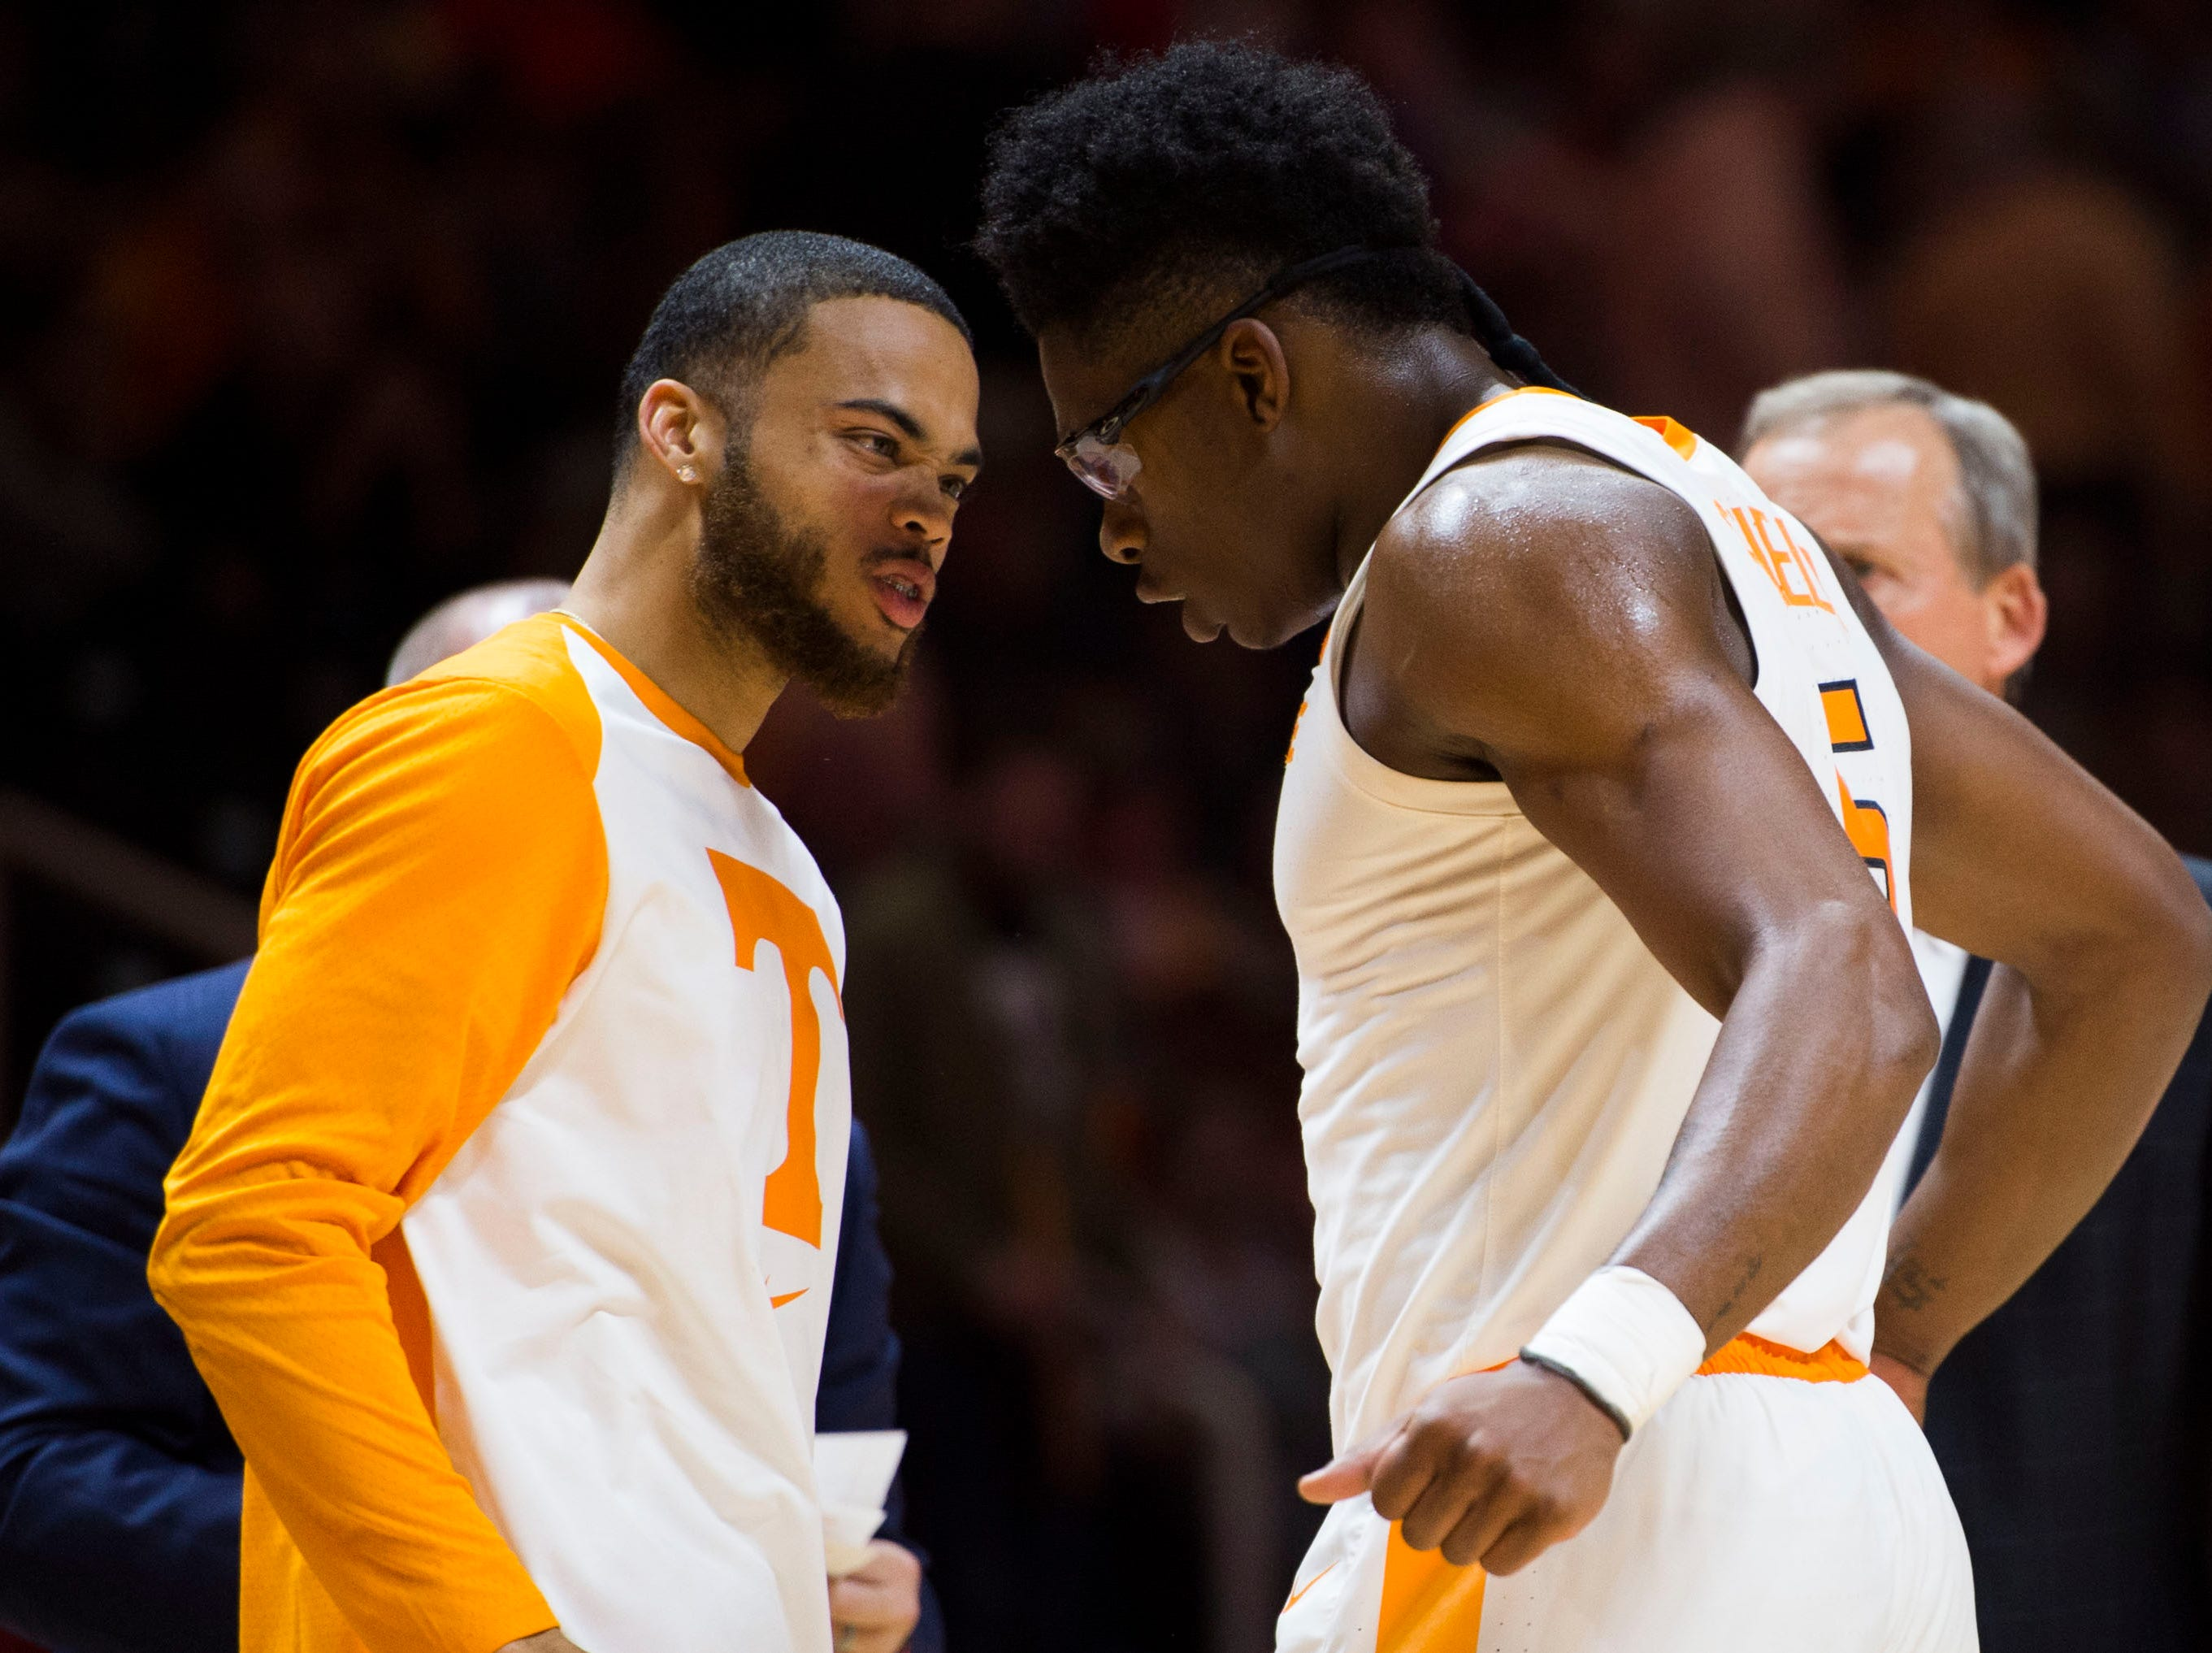 Tennessee's Lamonte Turner (1) celebrates with TennesseeÕs Admiral Schofield (5) during a game between Tennessee and Louisiana in Thompson-Boling Arena Friday, Nov. 9, 2018. Tennessee defeated Louisiana 87-65.